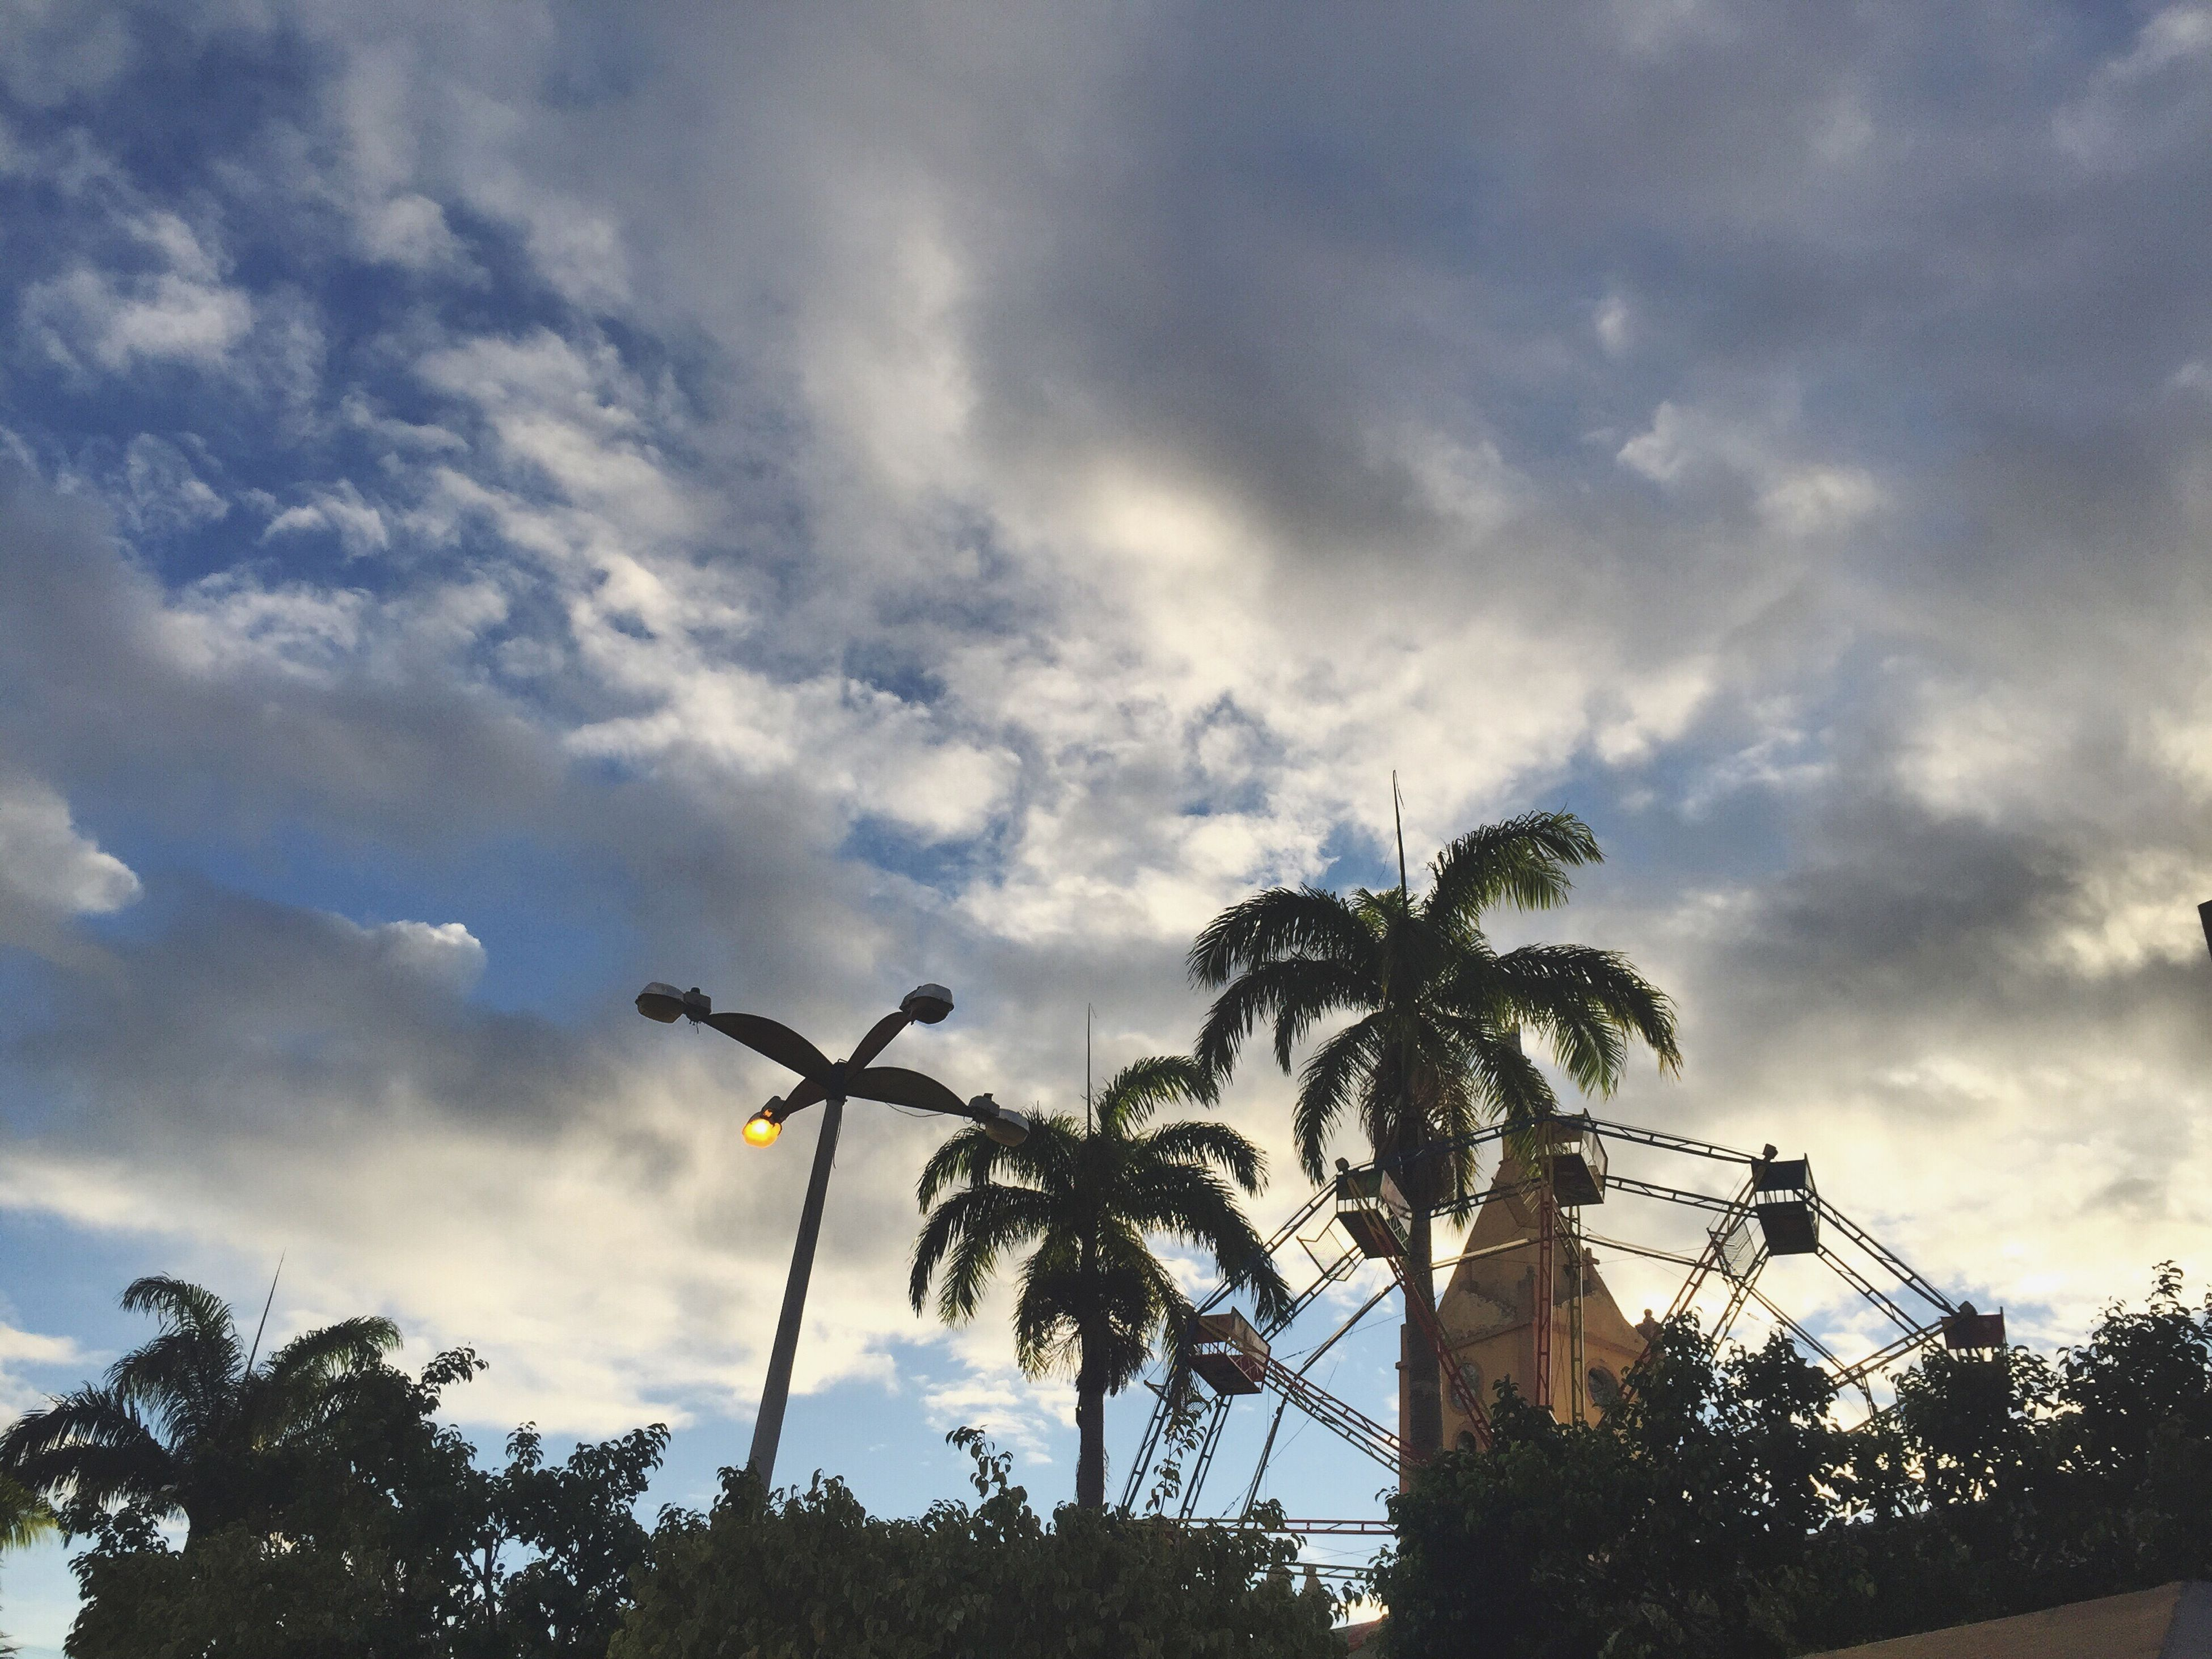 low angle view, tree, sky, cloud - sky, cloudy, silhouette, cloud, nature, growth, branch, tranquility, overcast, day, outdoors, no people, street light, beauty in nature, palm tree, weather, built structure